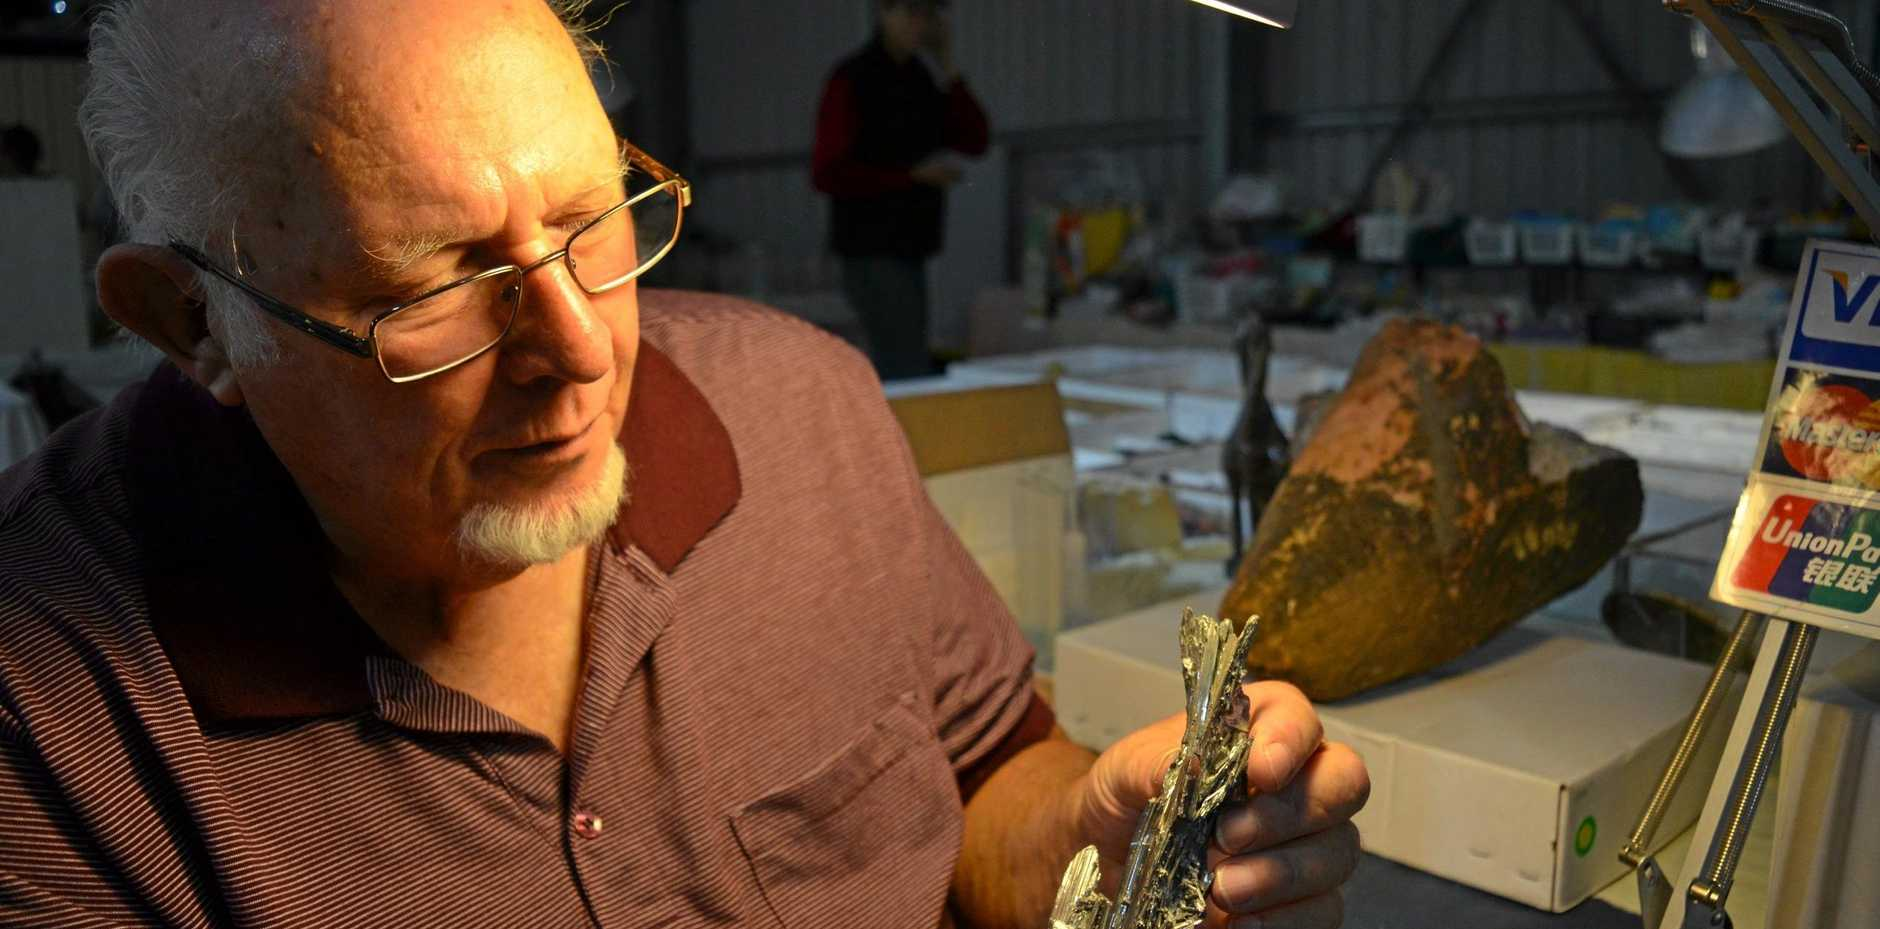 Mineral and fossil trader Peter Kettley inspects a specimen of stibnite crystal at the Warwick Rocks, Antiques, Bottles and Collectibles Fair, April 20, 2019.